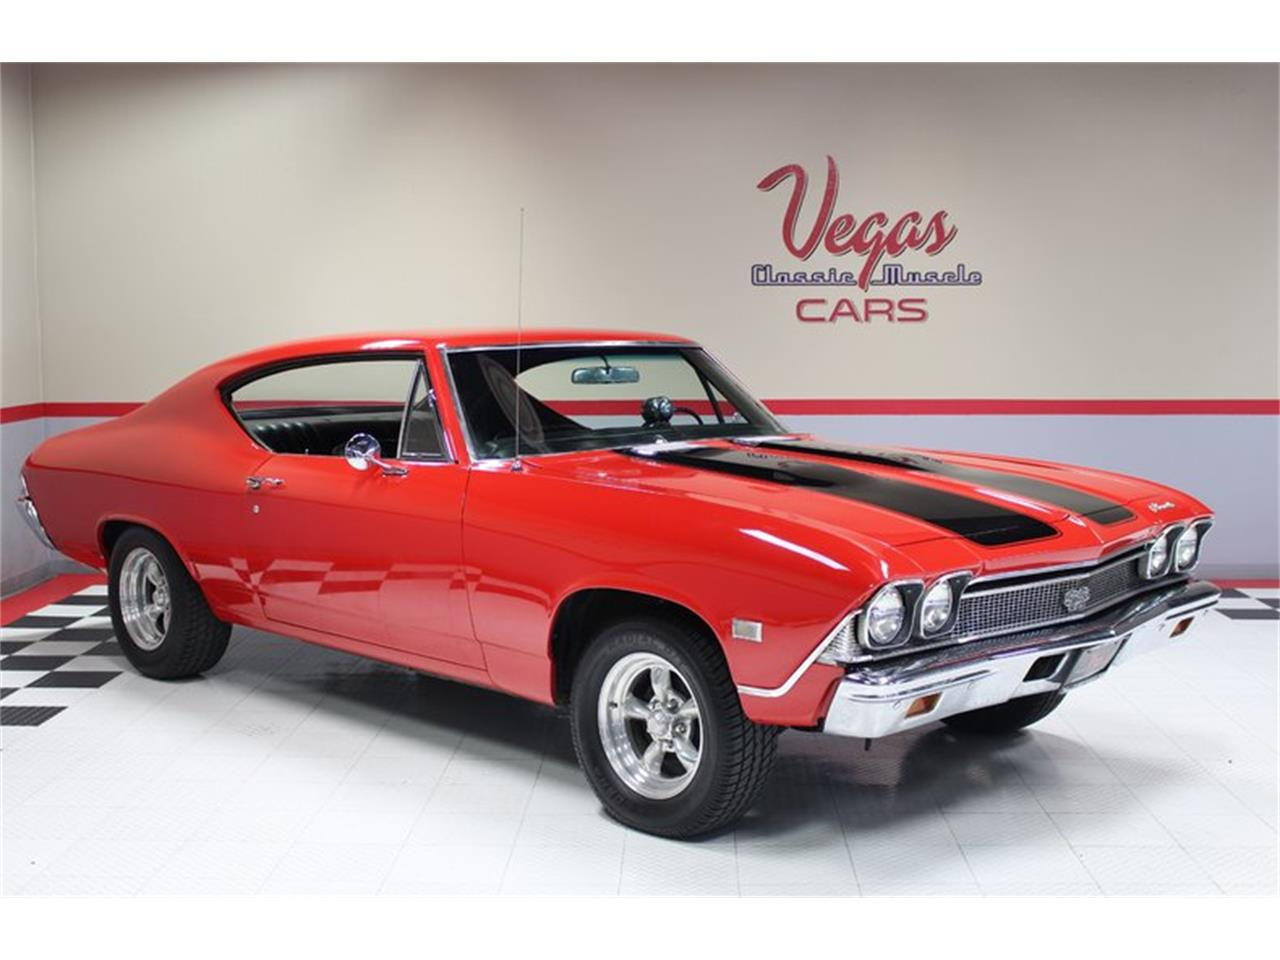 1968 Chevrolet Chevelle Ss For Sale Cc 972612 Large Picture Of Located In San Ramon California 3299500 Offered By